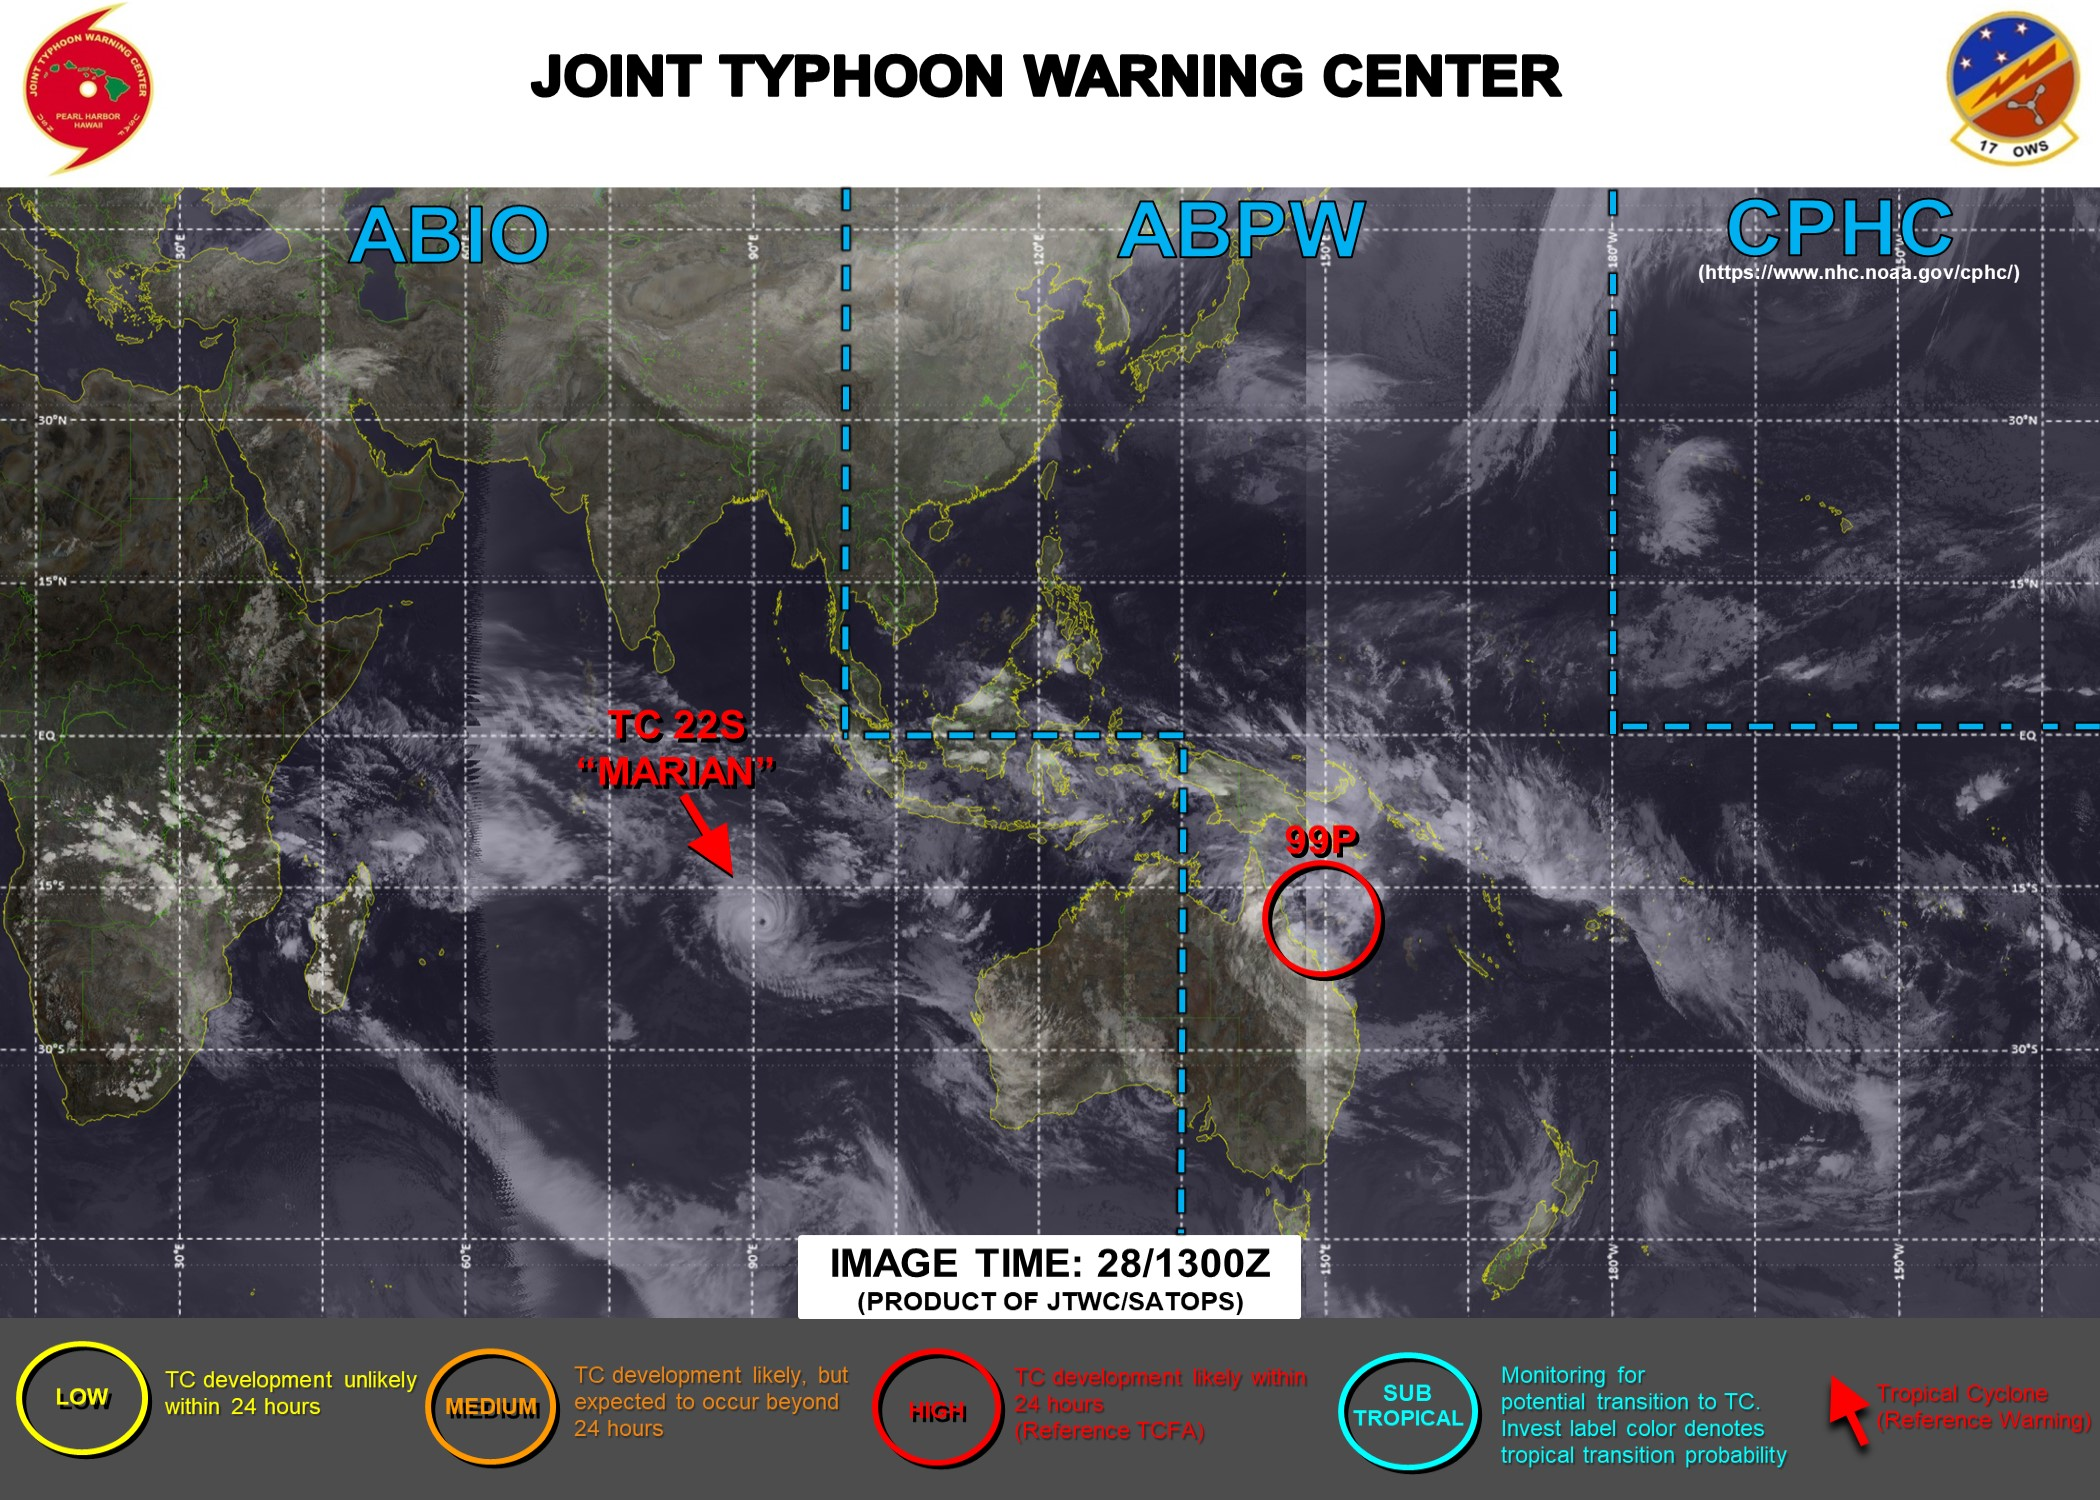 28/15UTC. JTWC HAS BEEN ISSUING 12HOURLY WARNINGS AND 3HOURLY SATELLITE BULLETINS ON TC 22S(MARIAN). INVEST 99P HAS BEEN UP-GRADED TO HIGH FOR THE NEXT 24HOURS.